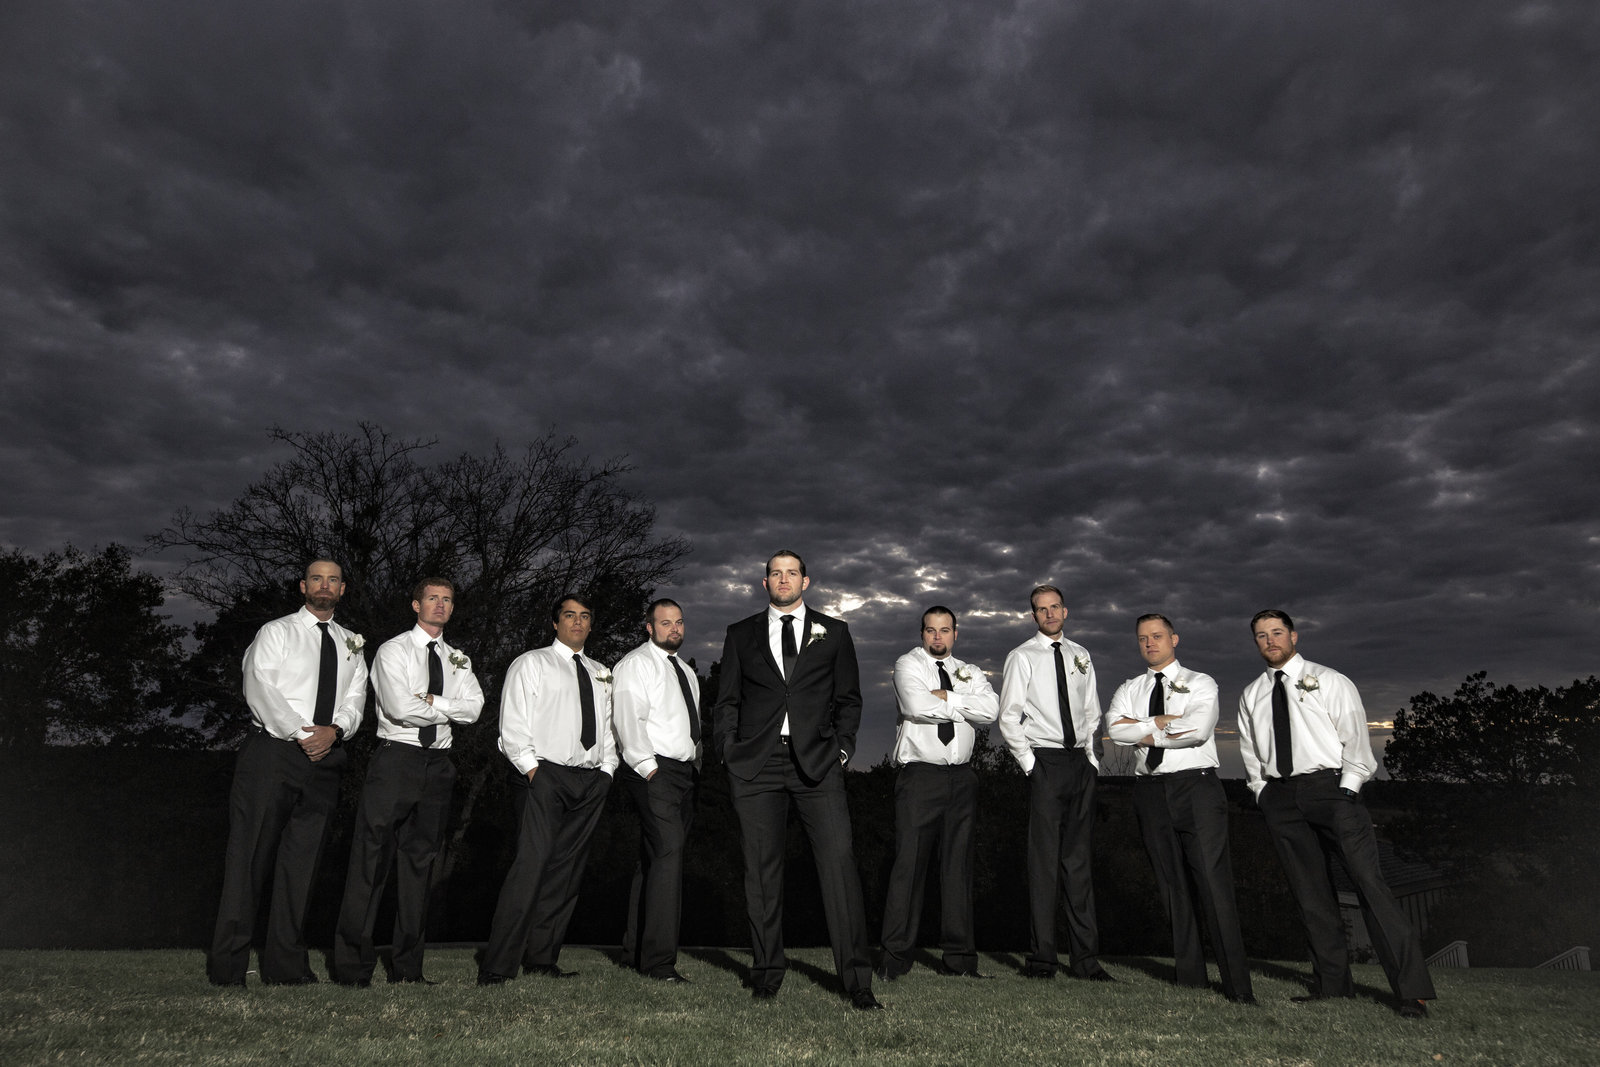 epic groom and groomsmen photo with epic clouds